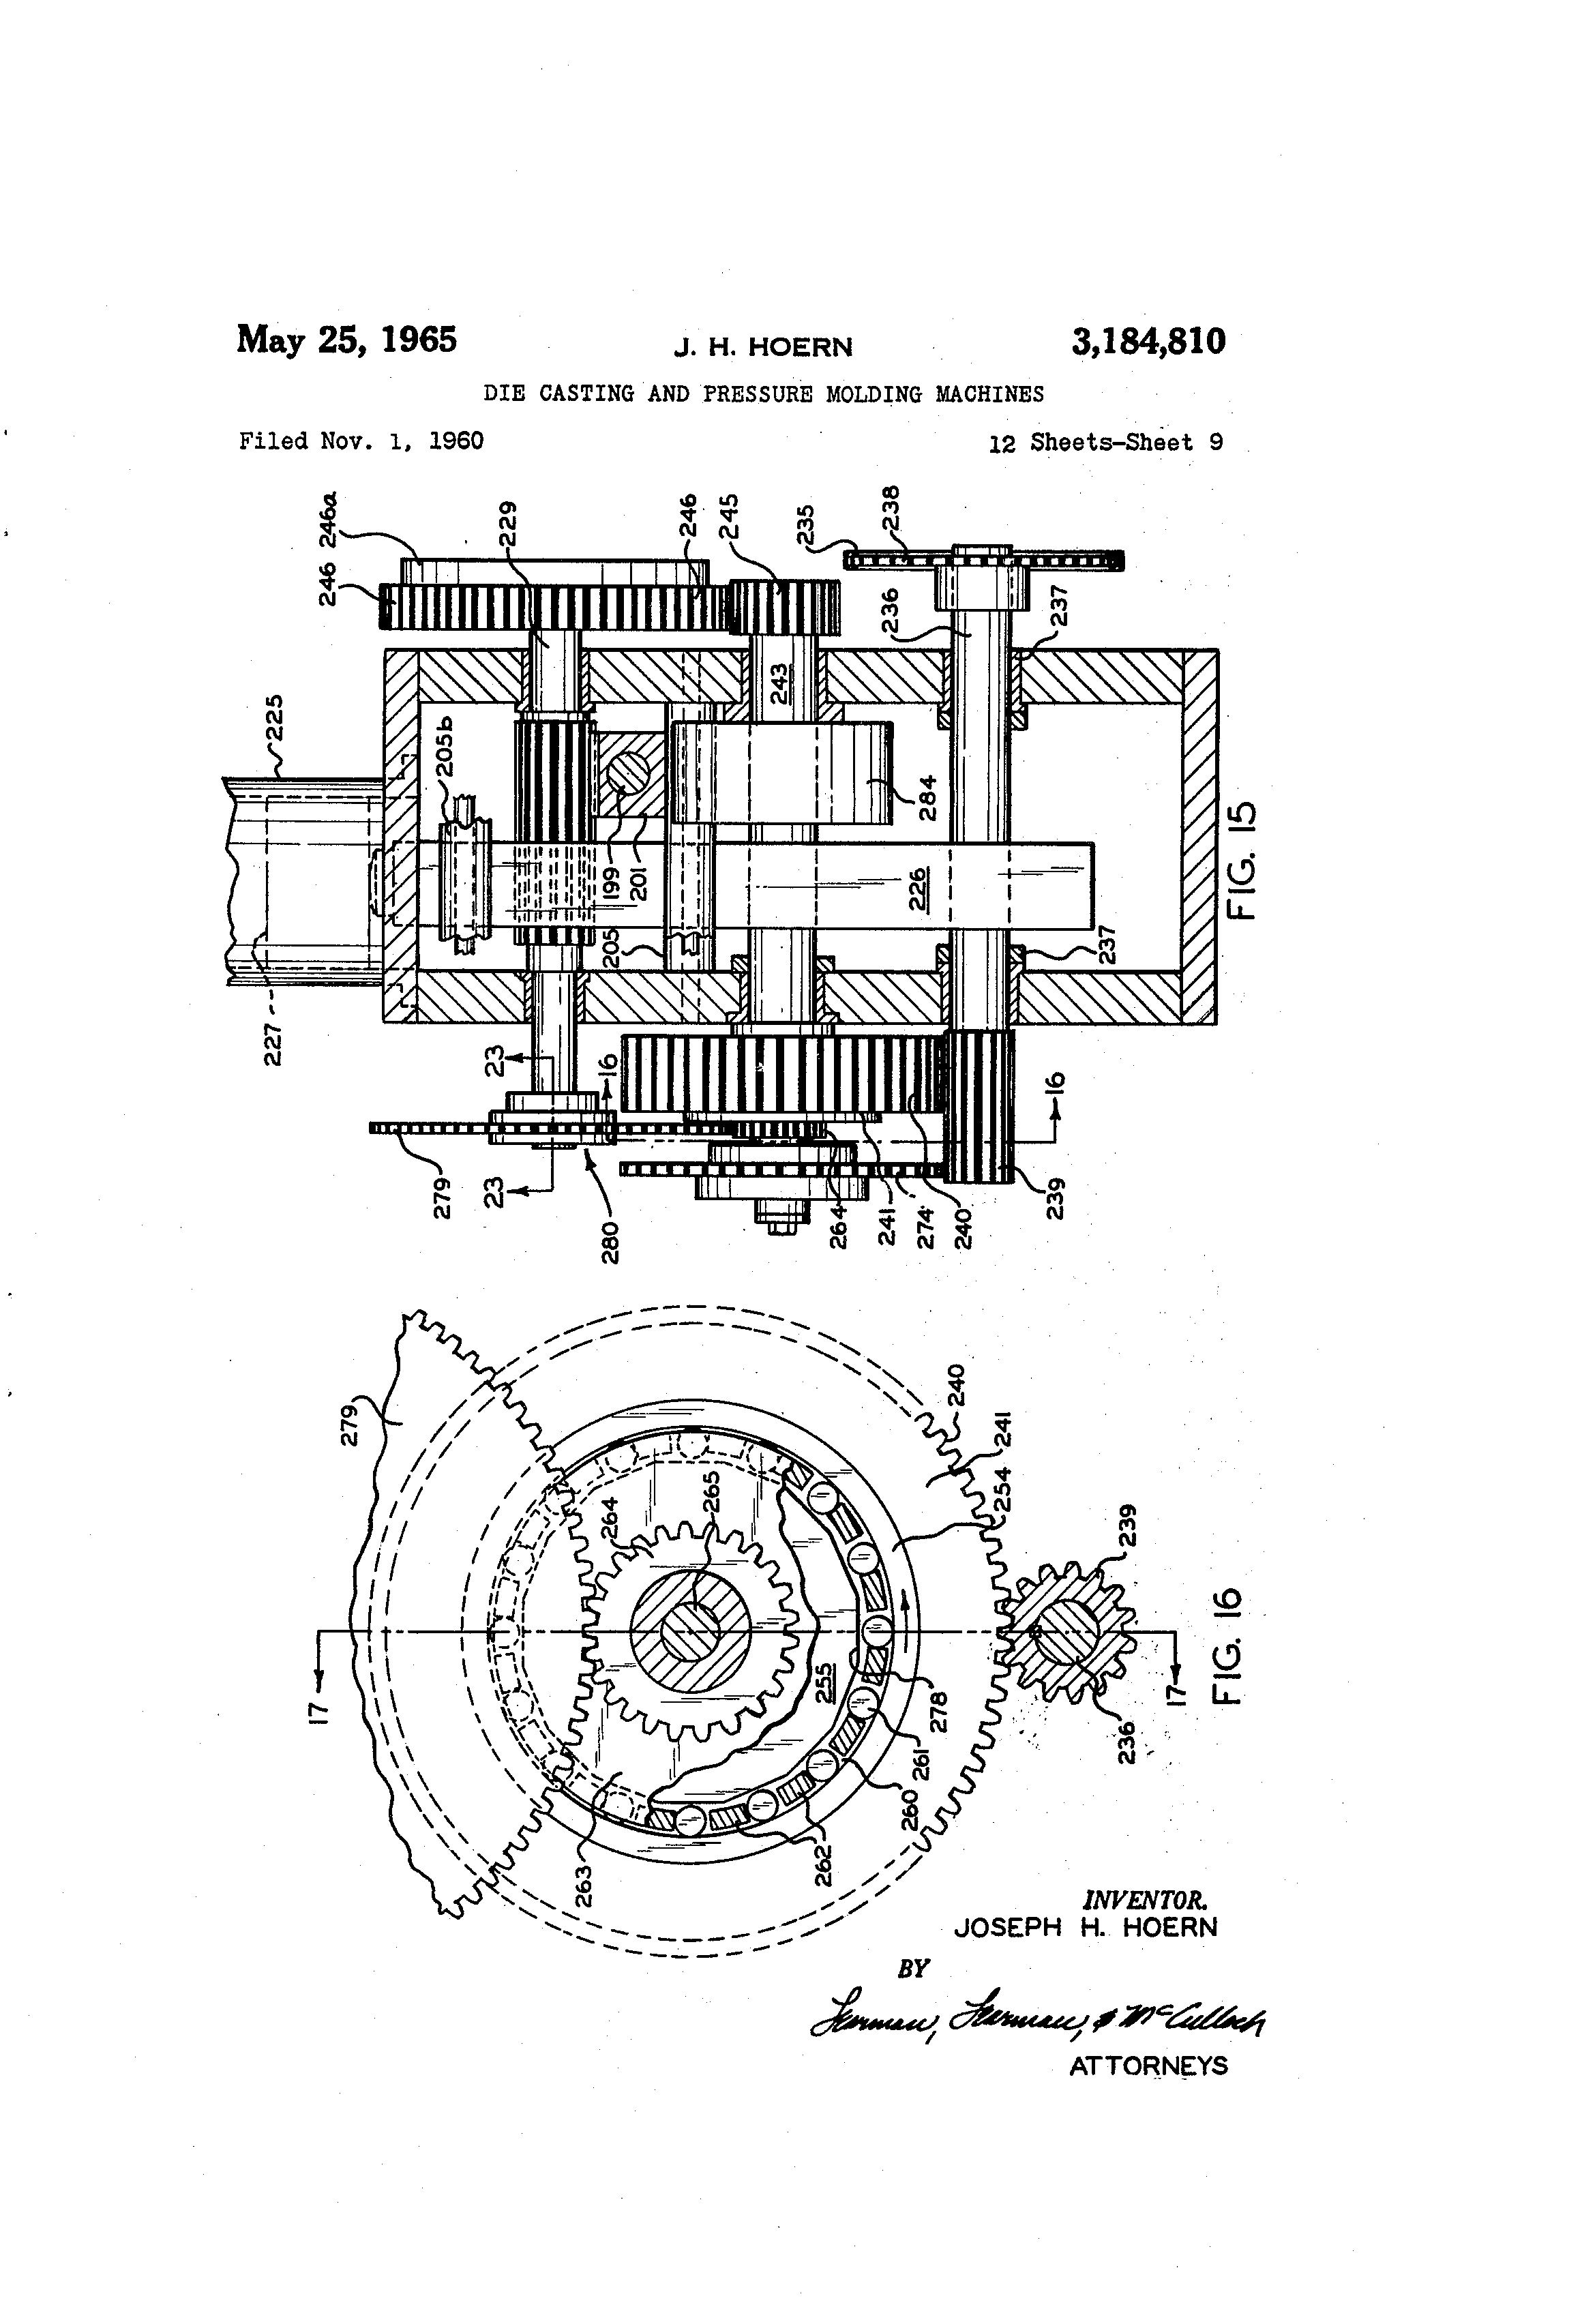 1960 impala wiring diagram patent us3184810 die casting and pressure molding